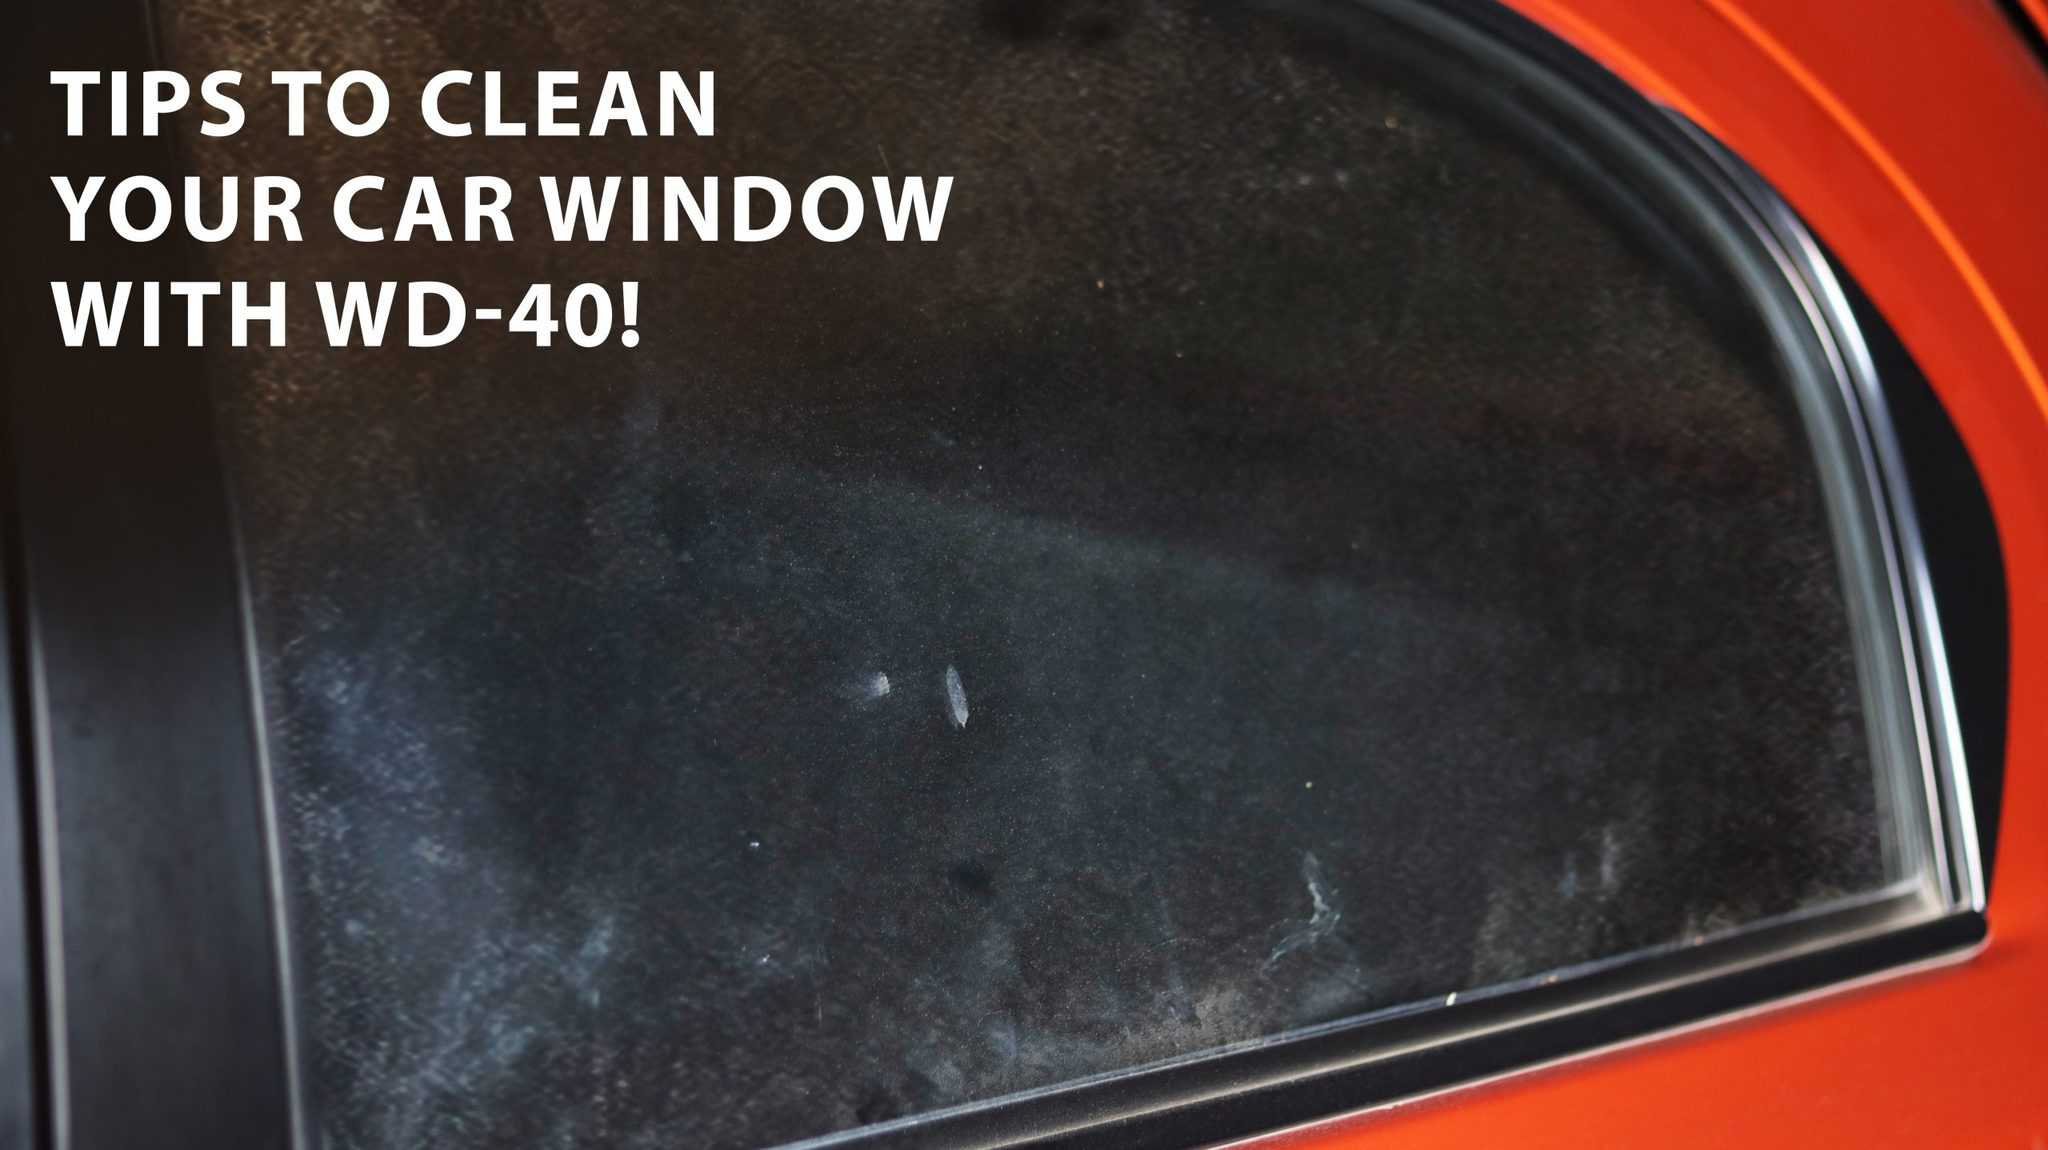 tips to clean your car window with wd 40(2)